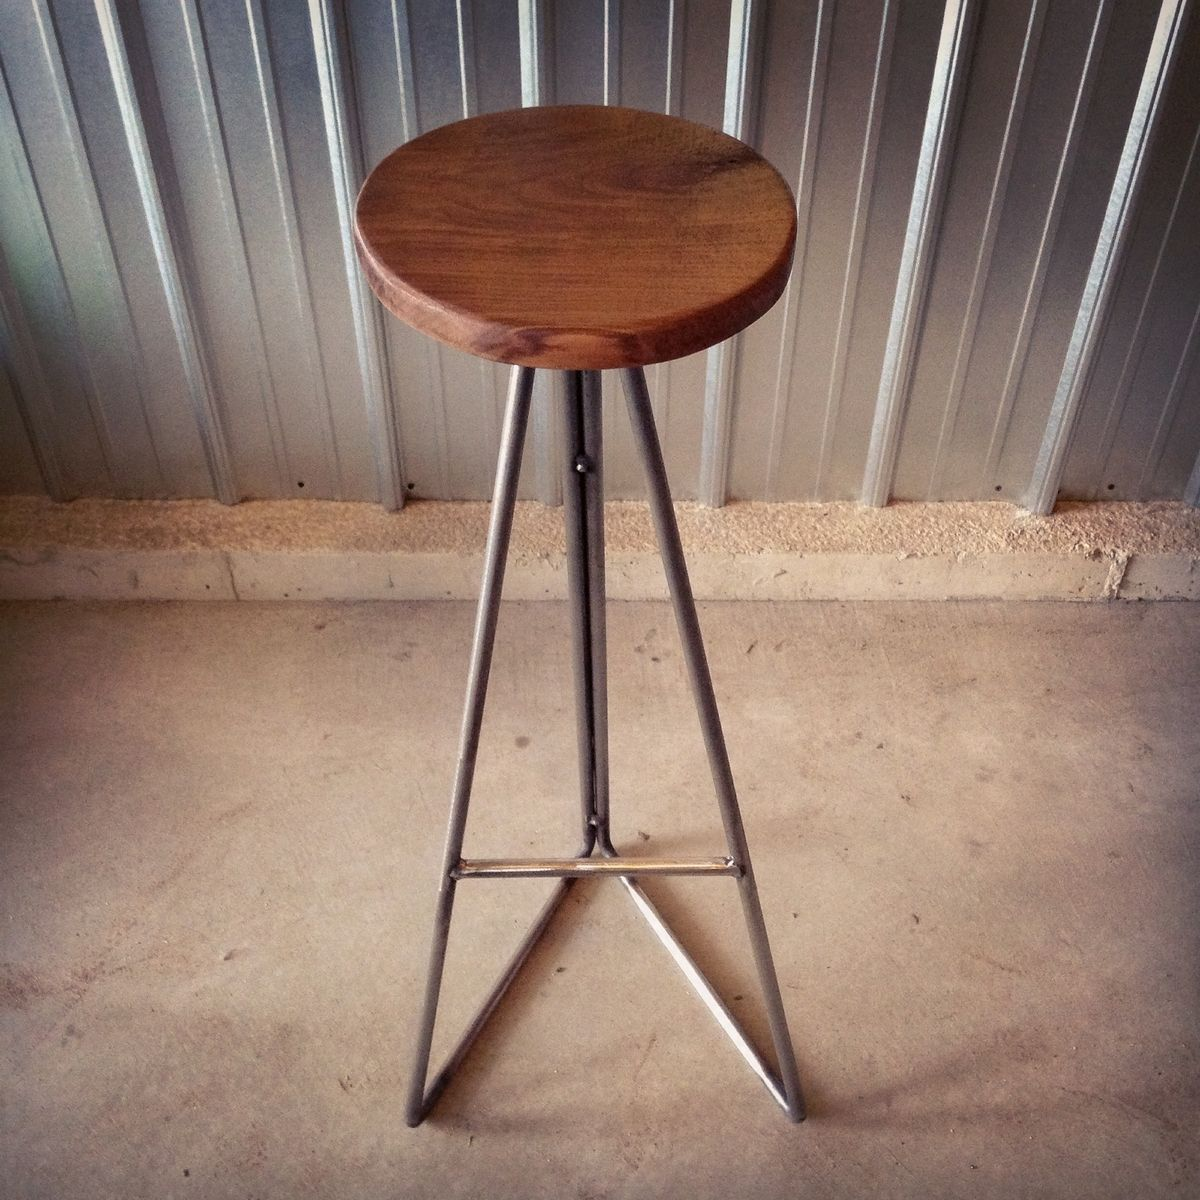 Walnut steel extra tall bar stools